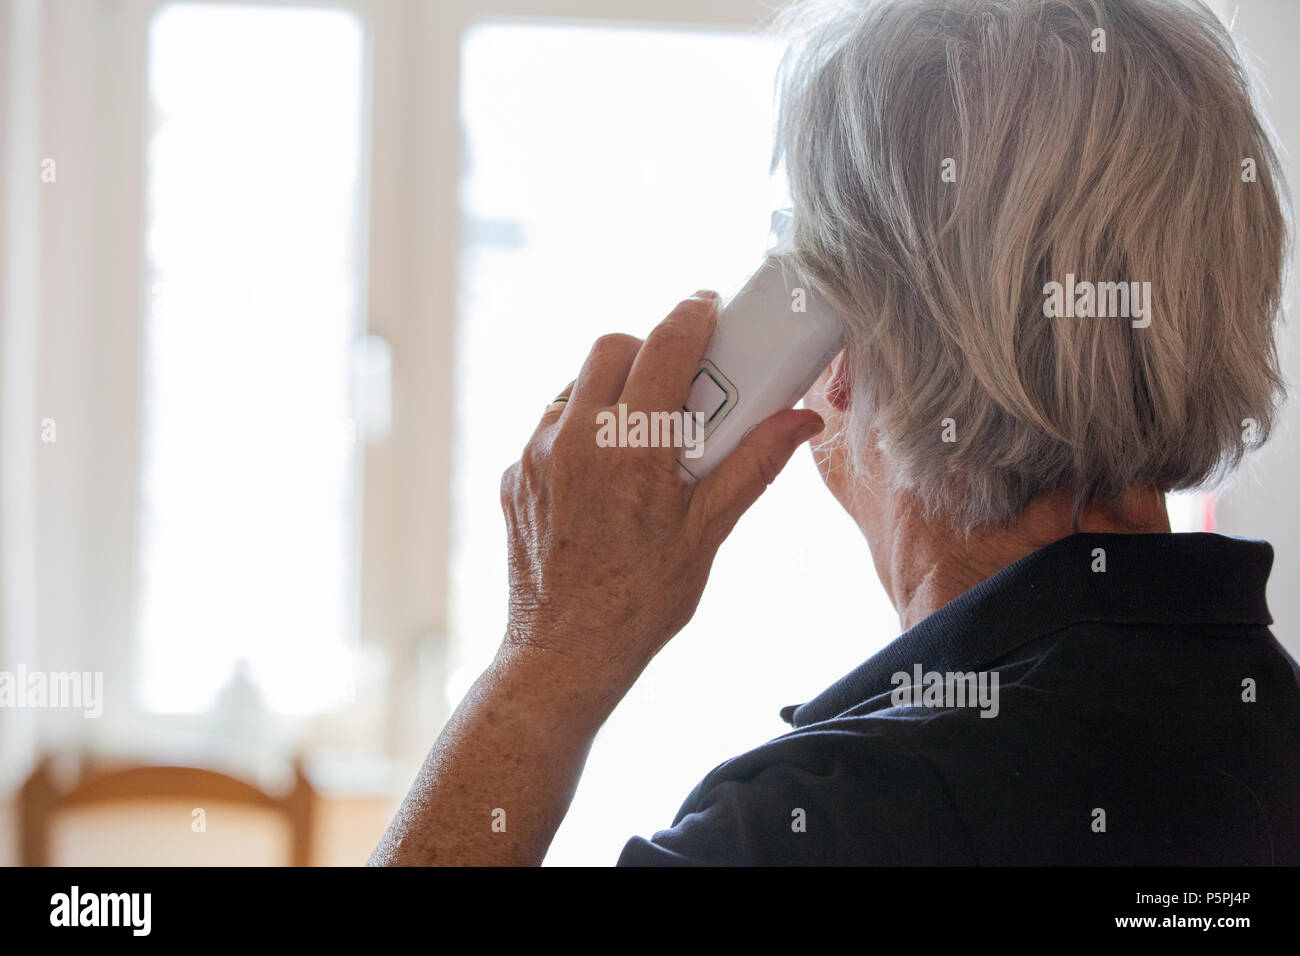 ältere Person am Telefon Hilfe suchend, elderly person on the phone looking for help - Stock Image